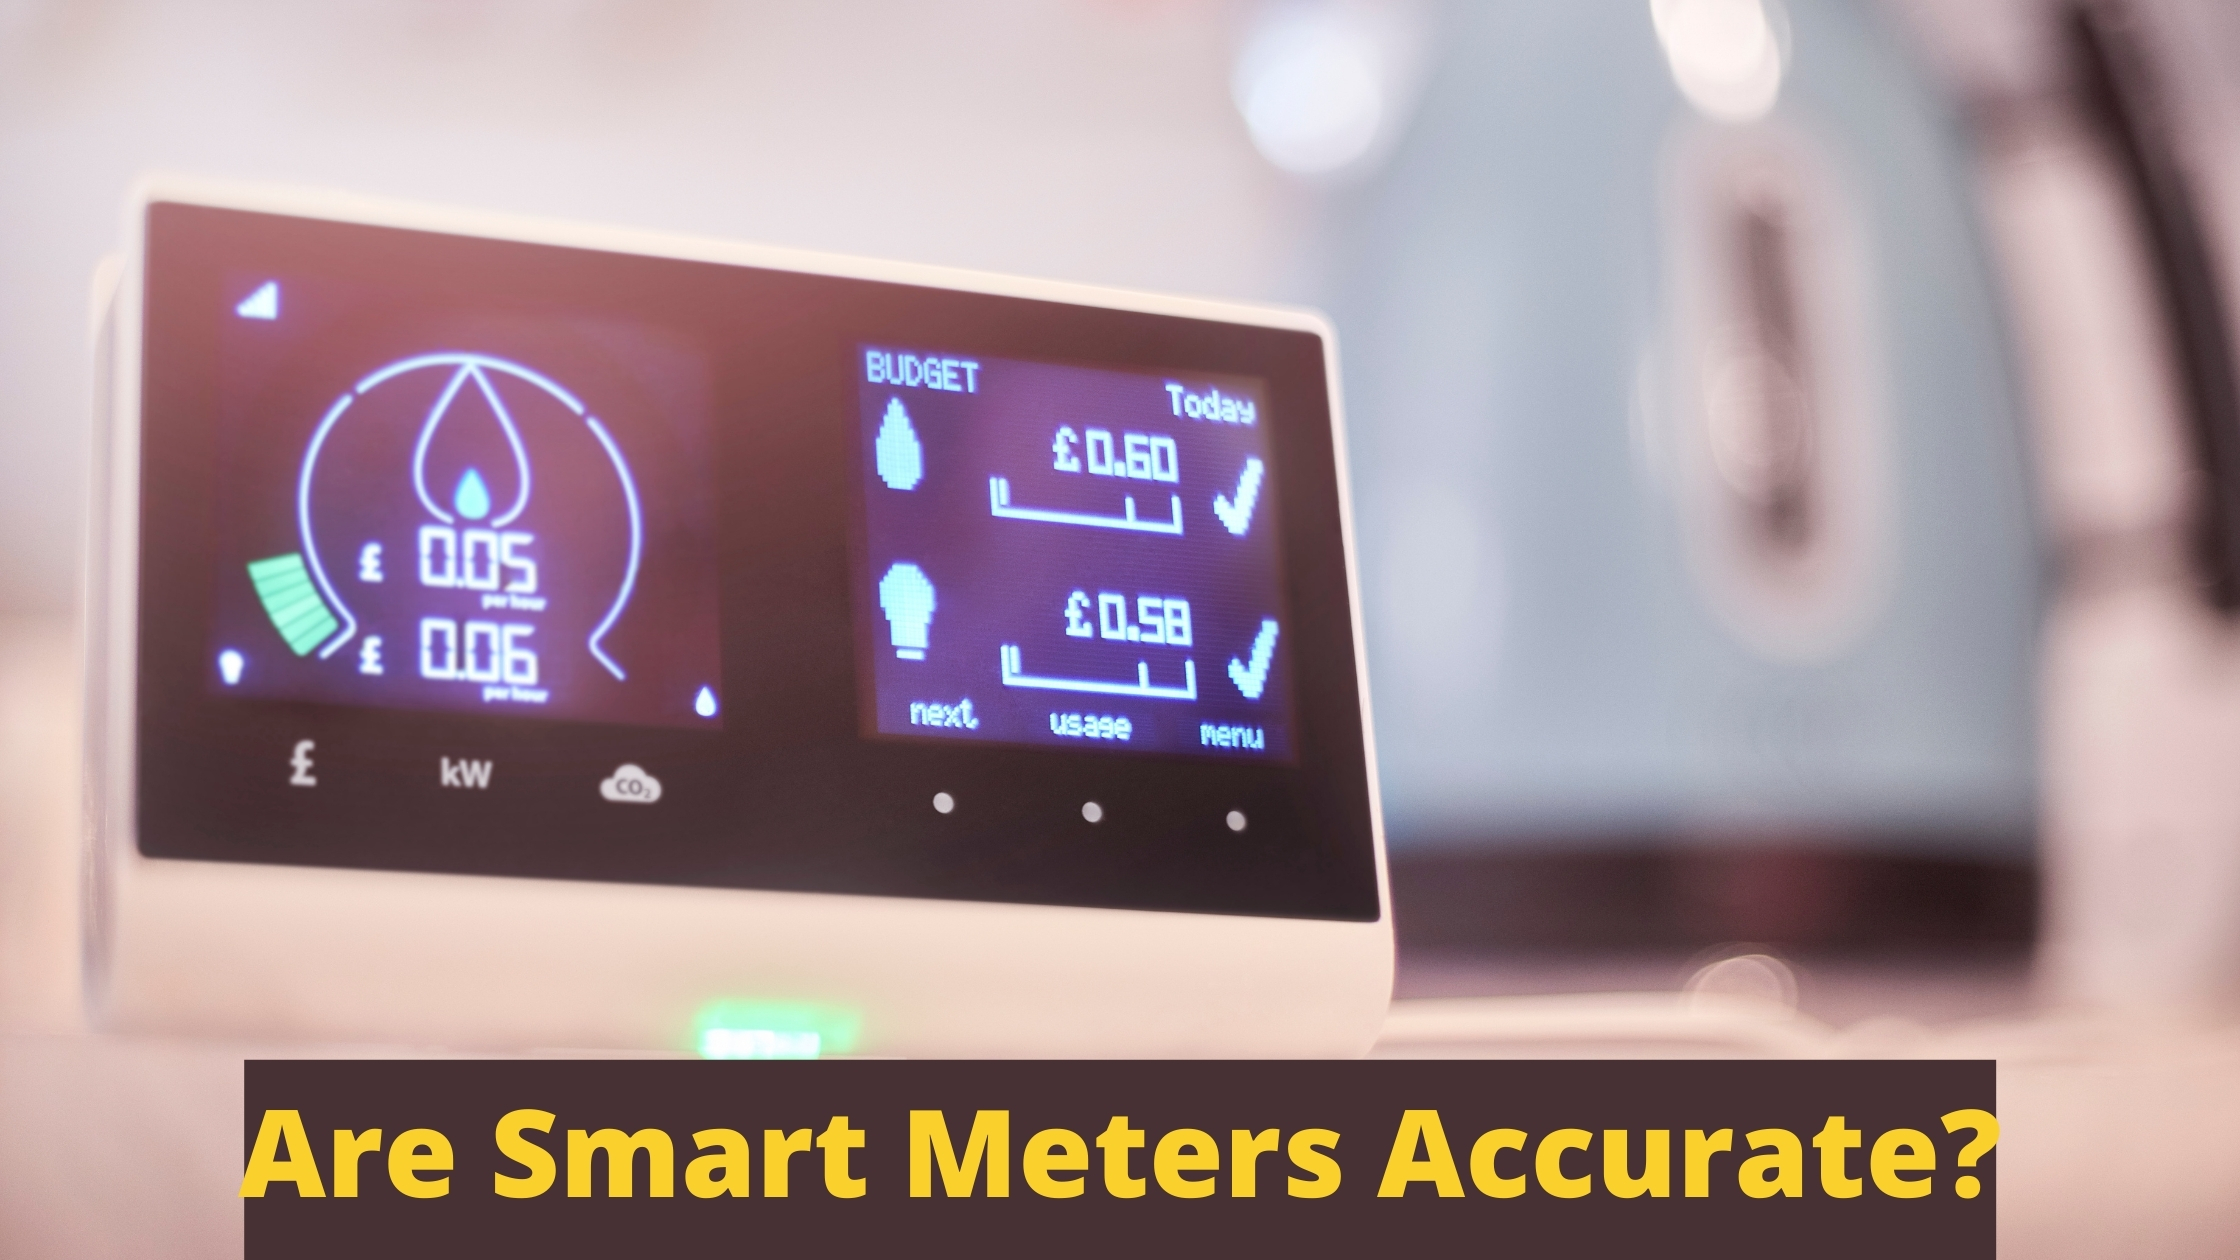 Are Smart Meters Accurate